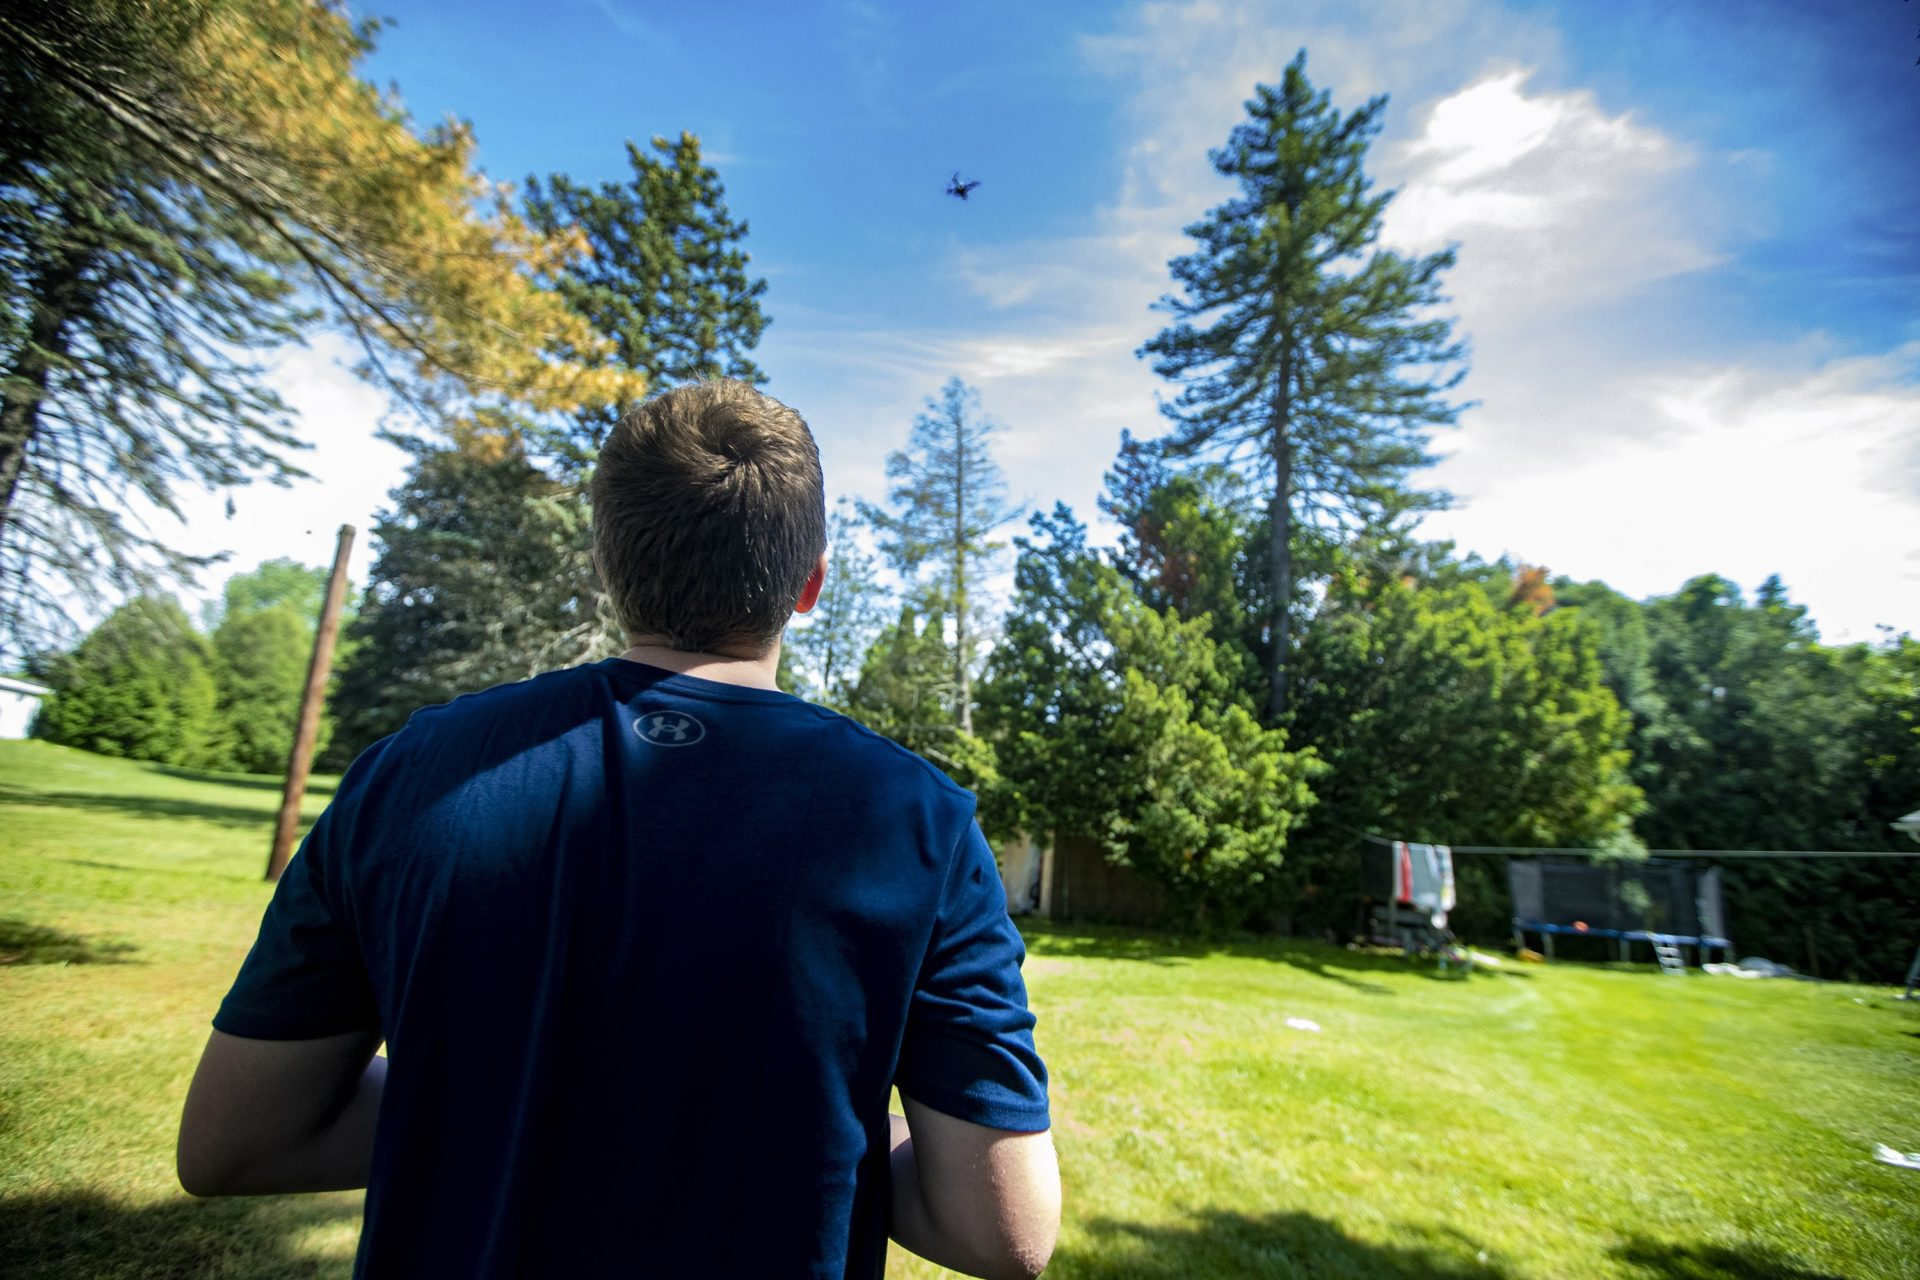 Charlie, 12, flies a drone in the backyard of his home in West Springfield. (Jesse Costa/WBUR)